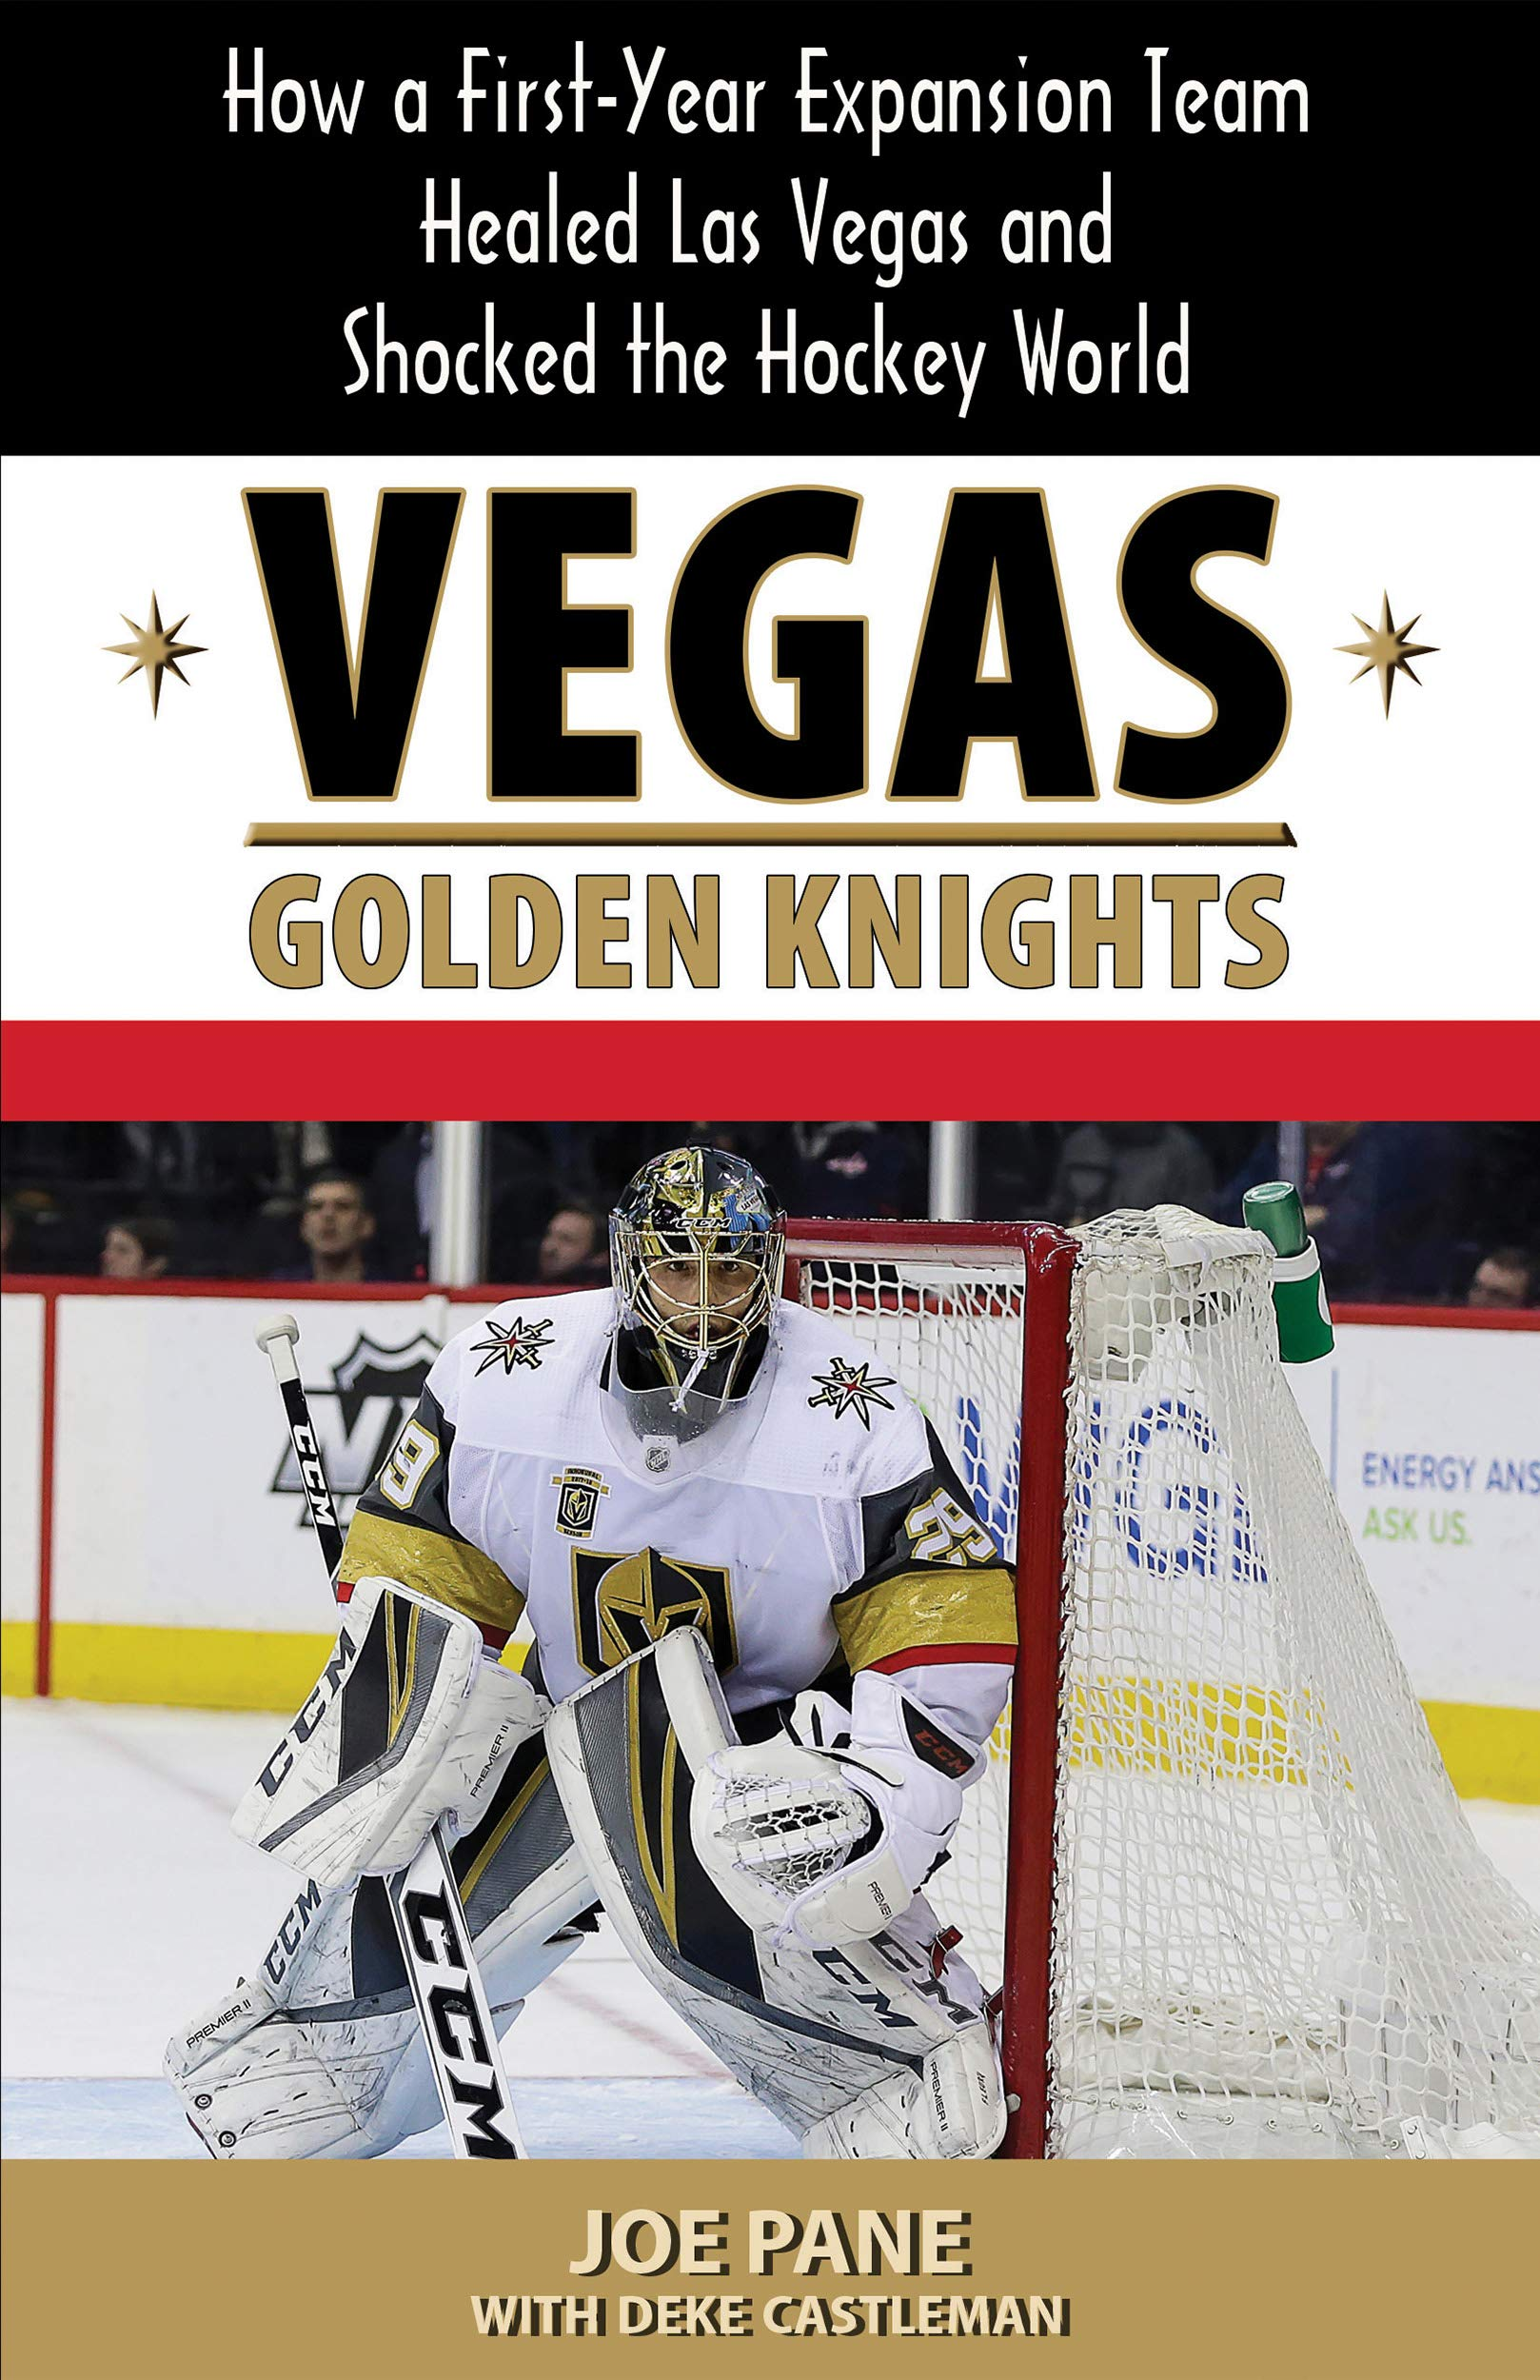 Vegas Golden Knights: How a First Year Expansion Team Healed Las Vegas and Shocked the Hockey World (English Edition)